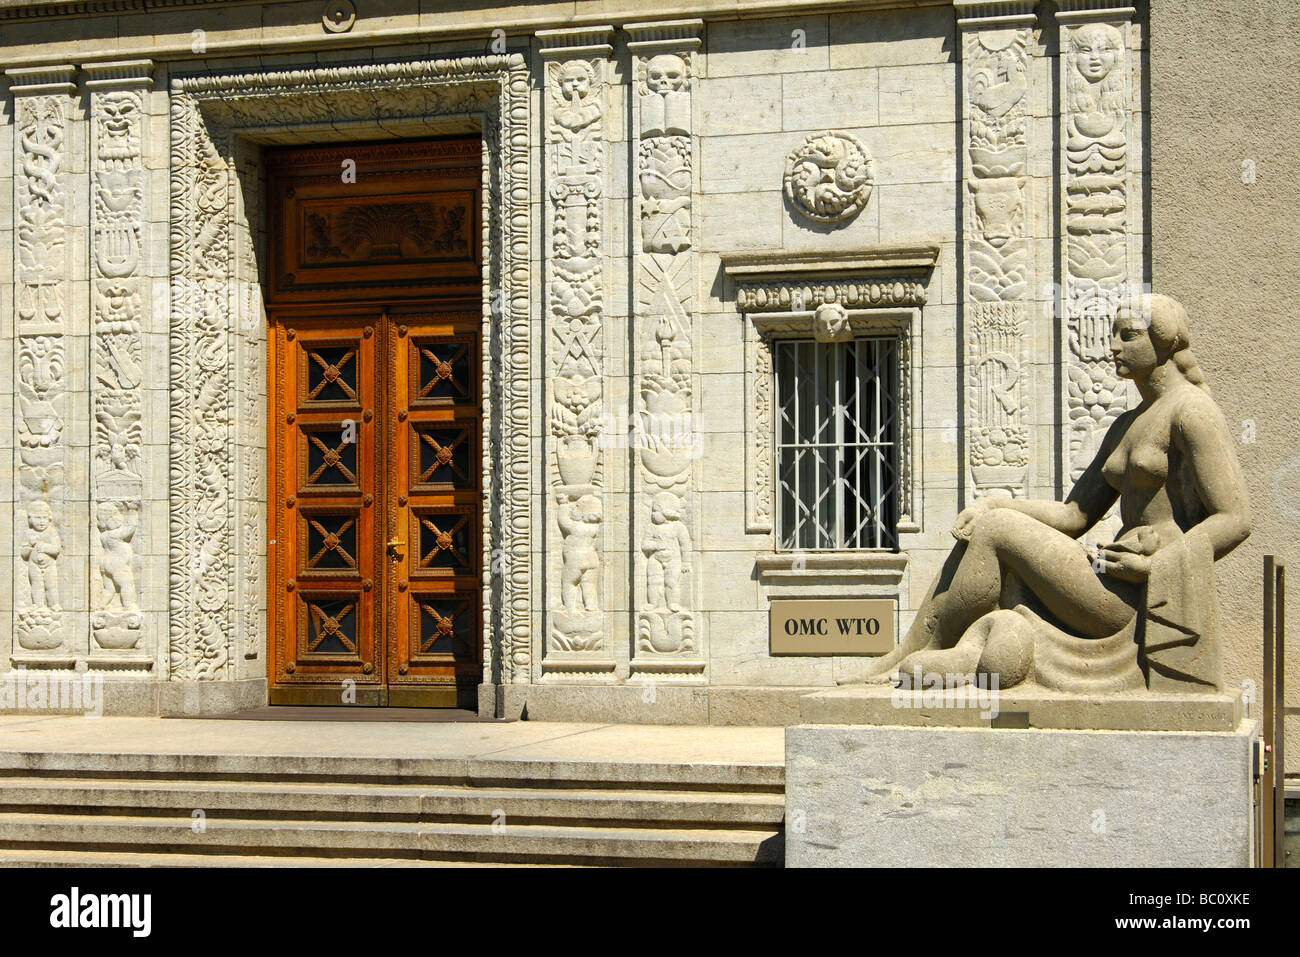 Statue of a woman at the entrance to the Centre William Rappard, headquarters of the World Trade Organization Geneva Stock Photo